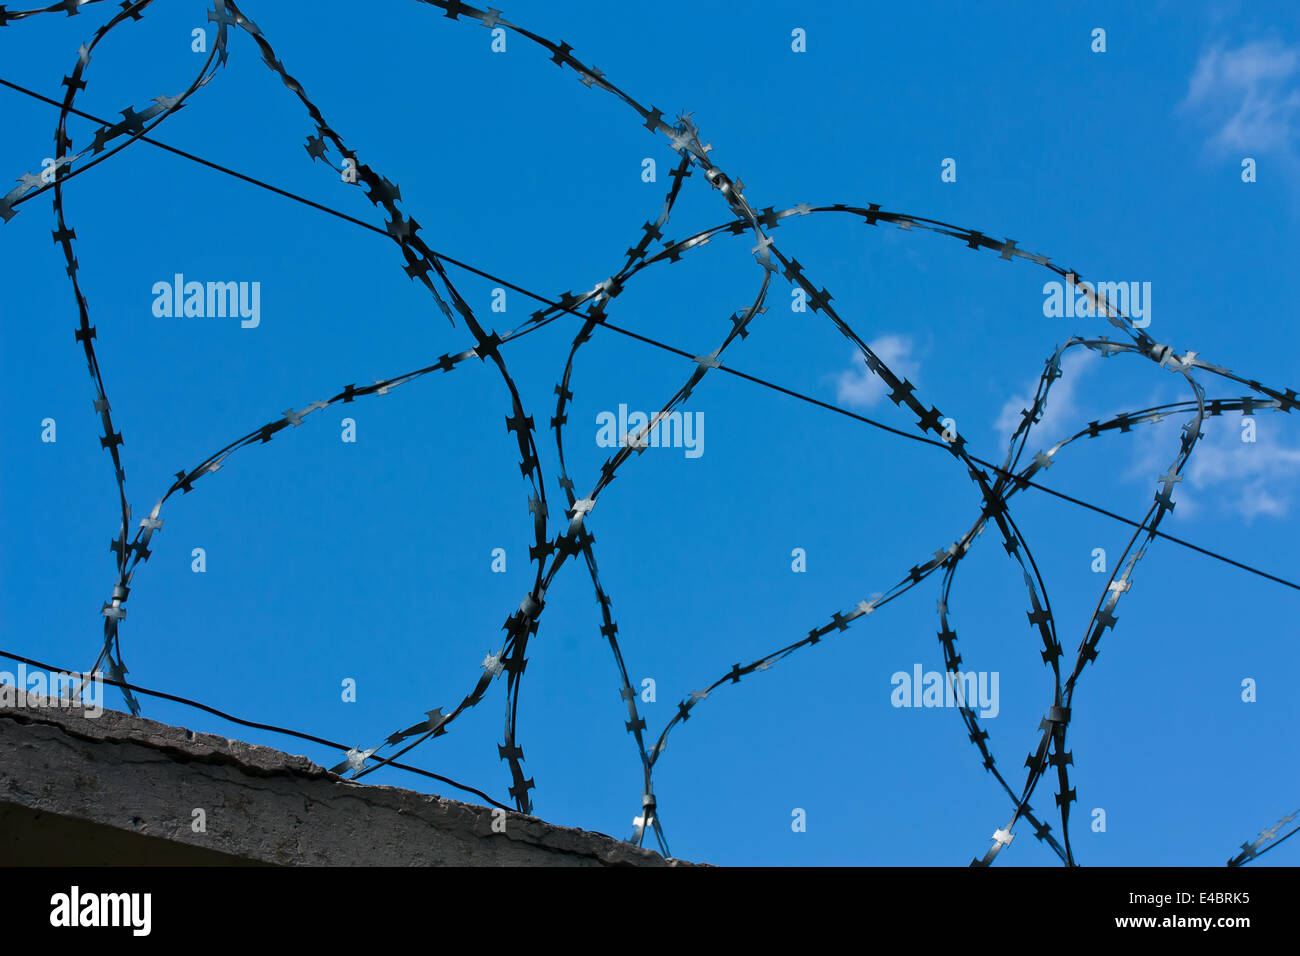 Barbed wires and blue sky - Stock Image